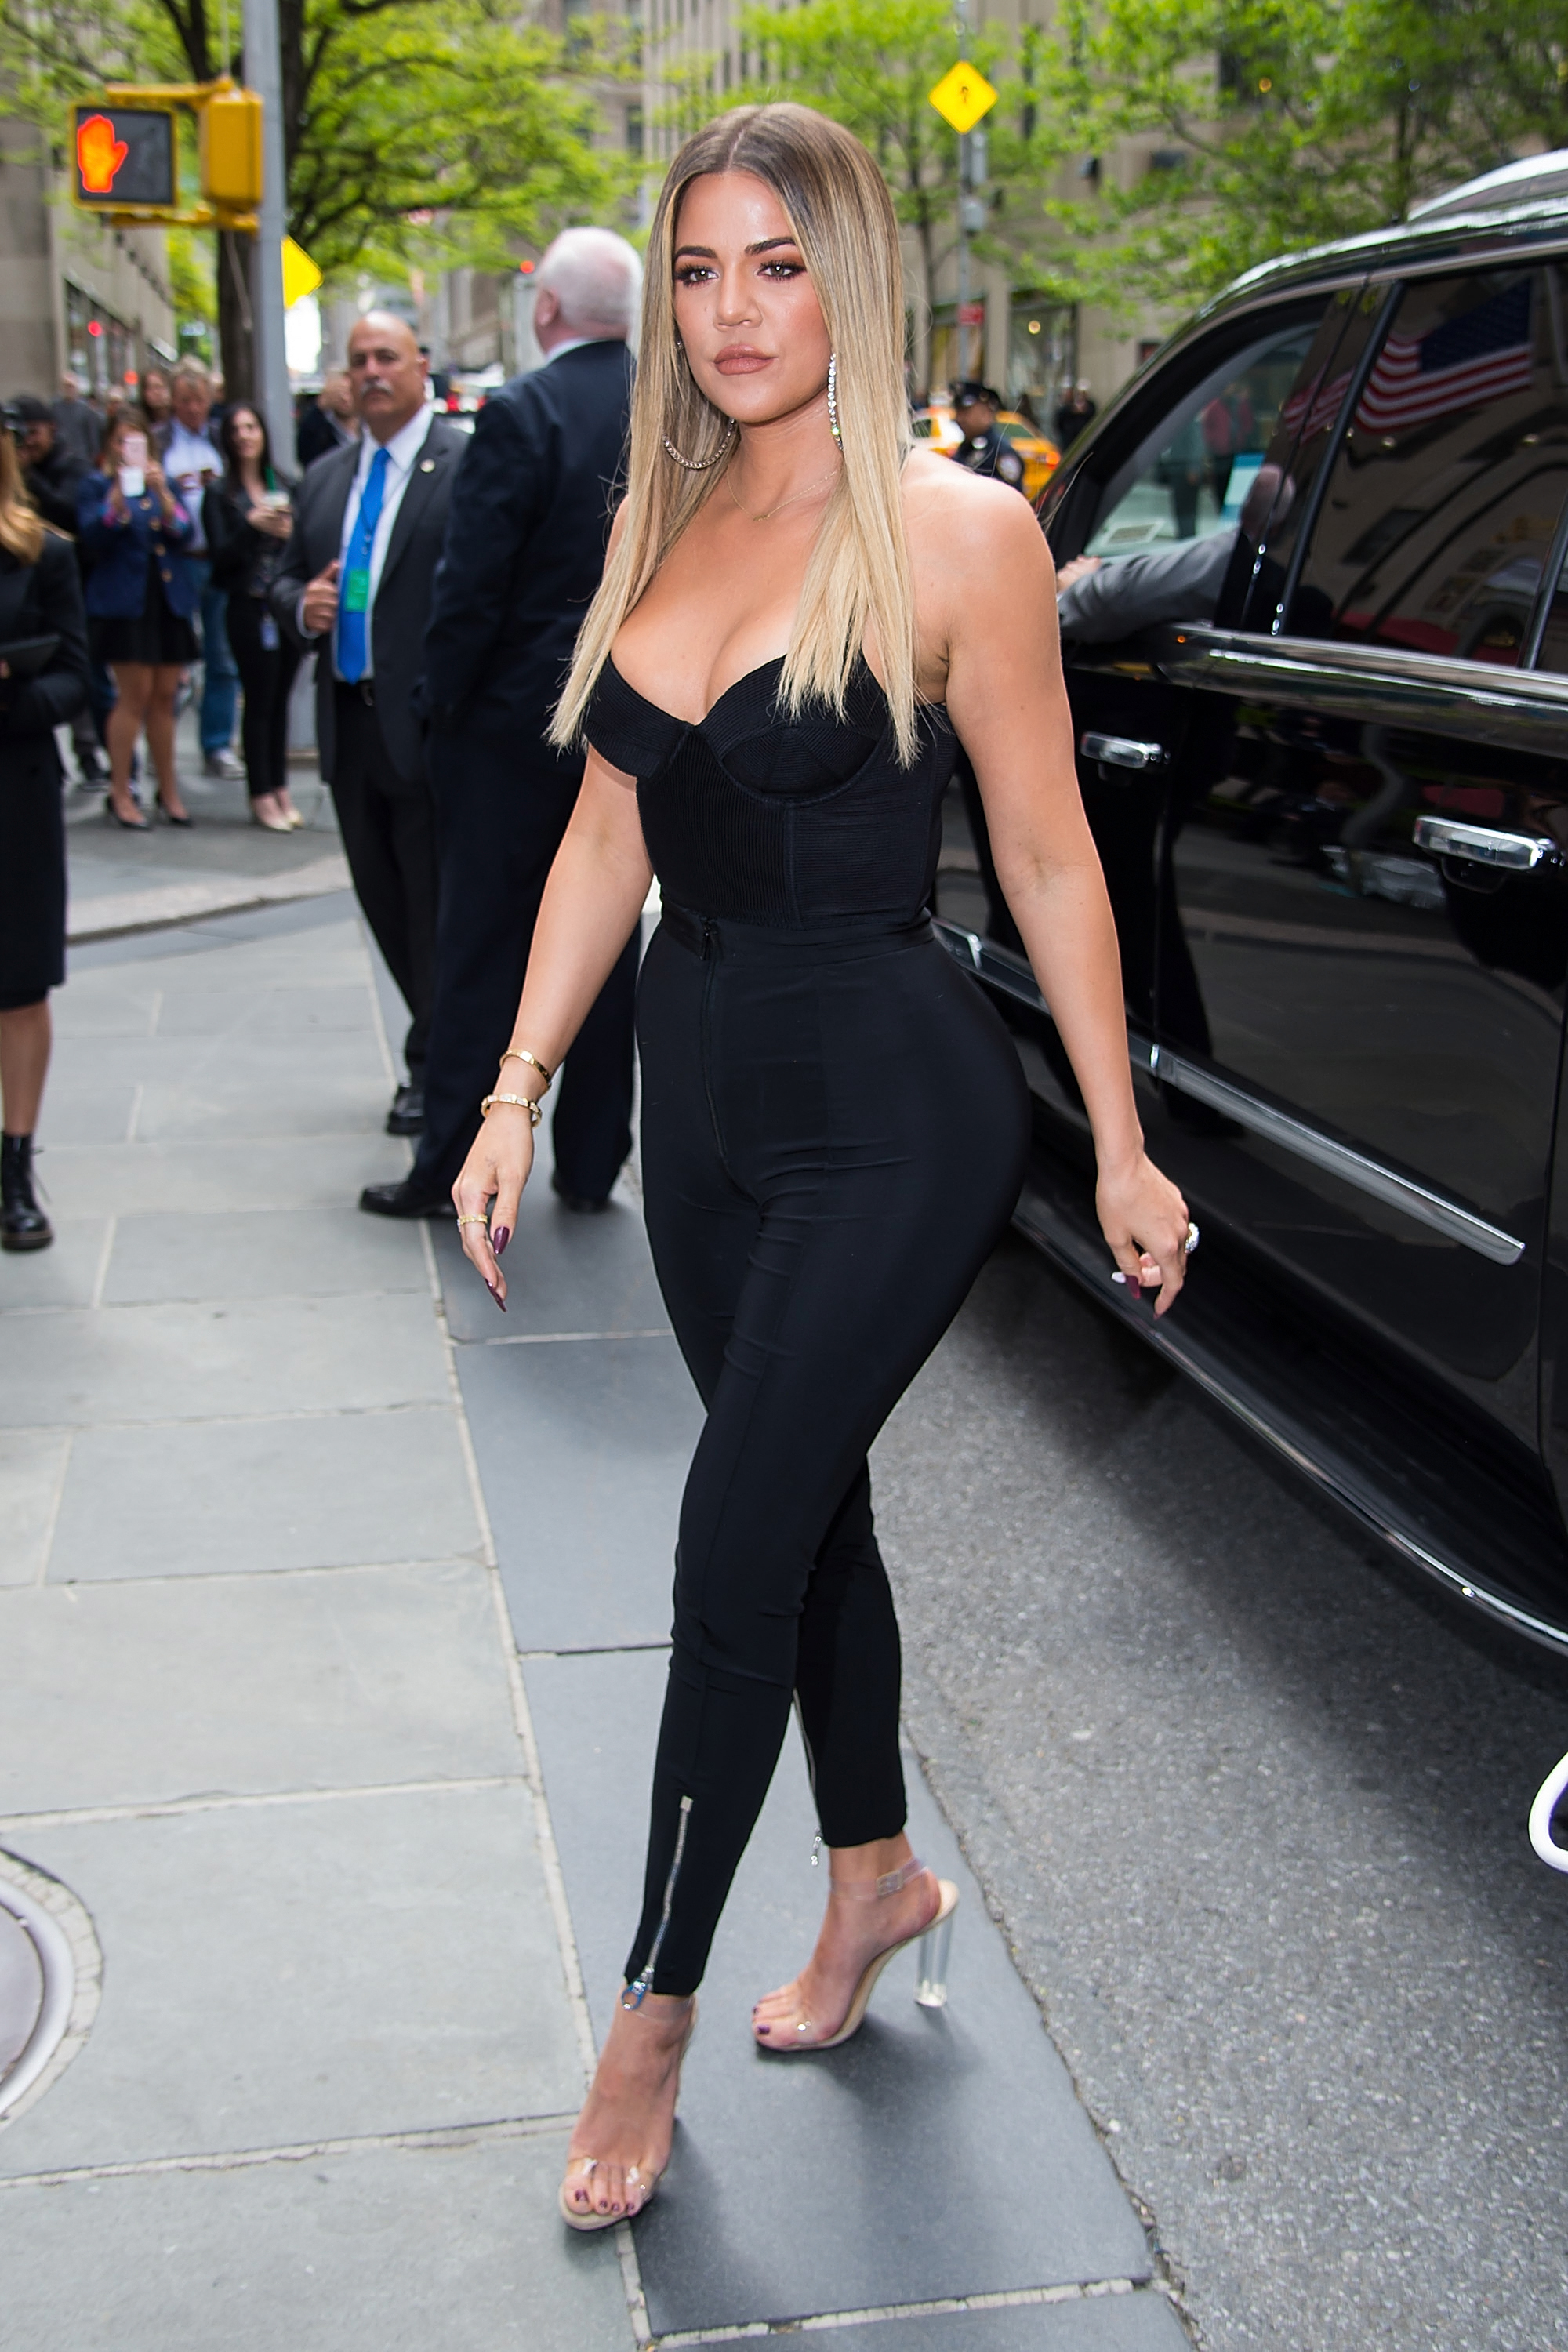 Have I know that girl khloe something